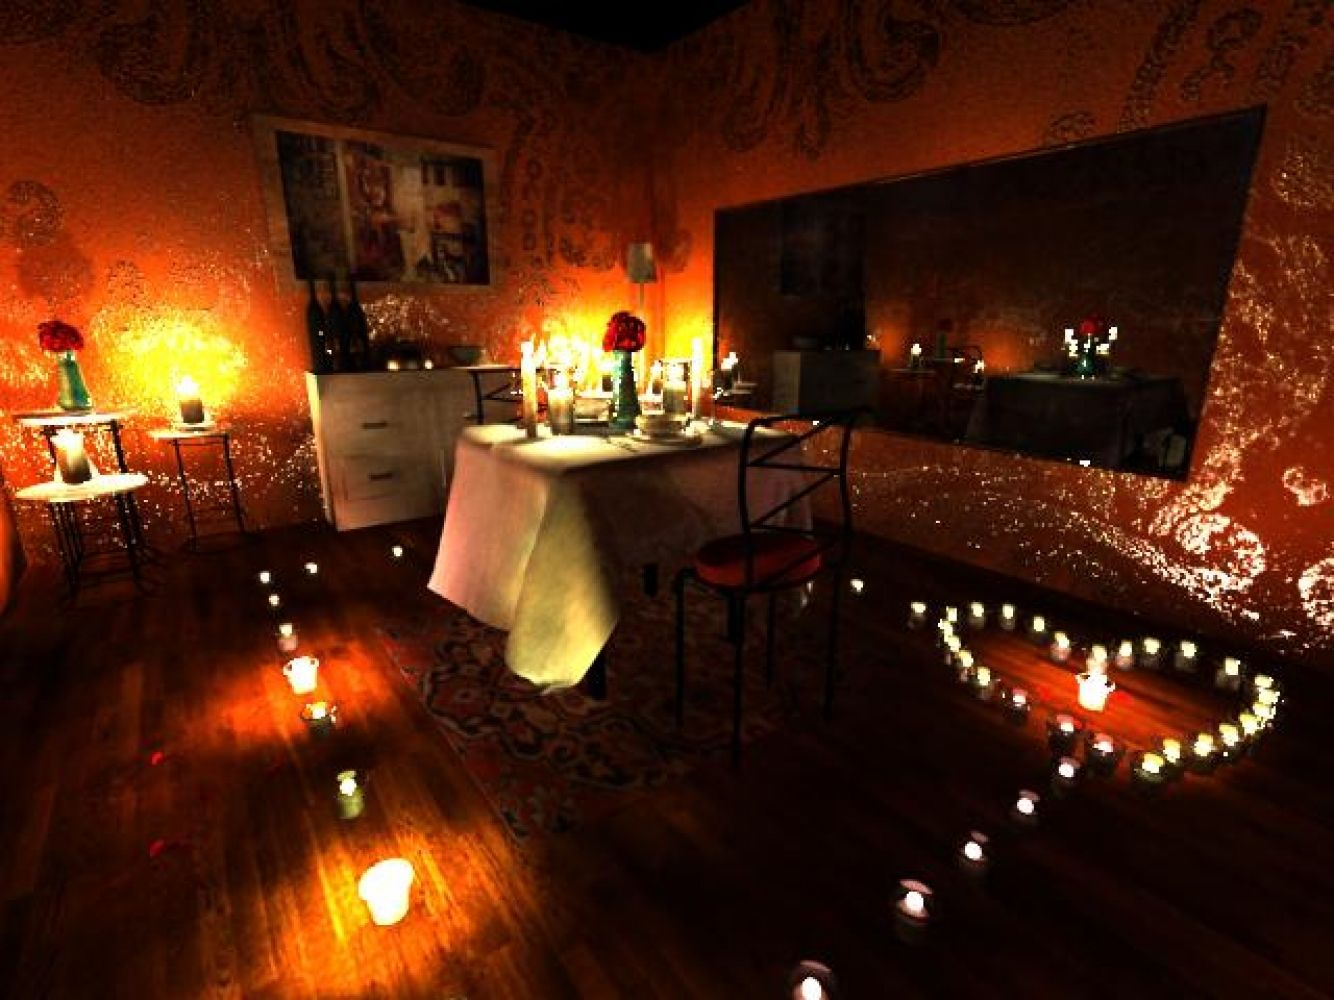 Man Proposes With Lights Display Display Pictures Romantic And Display